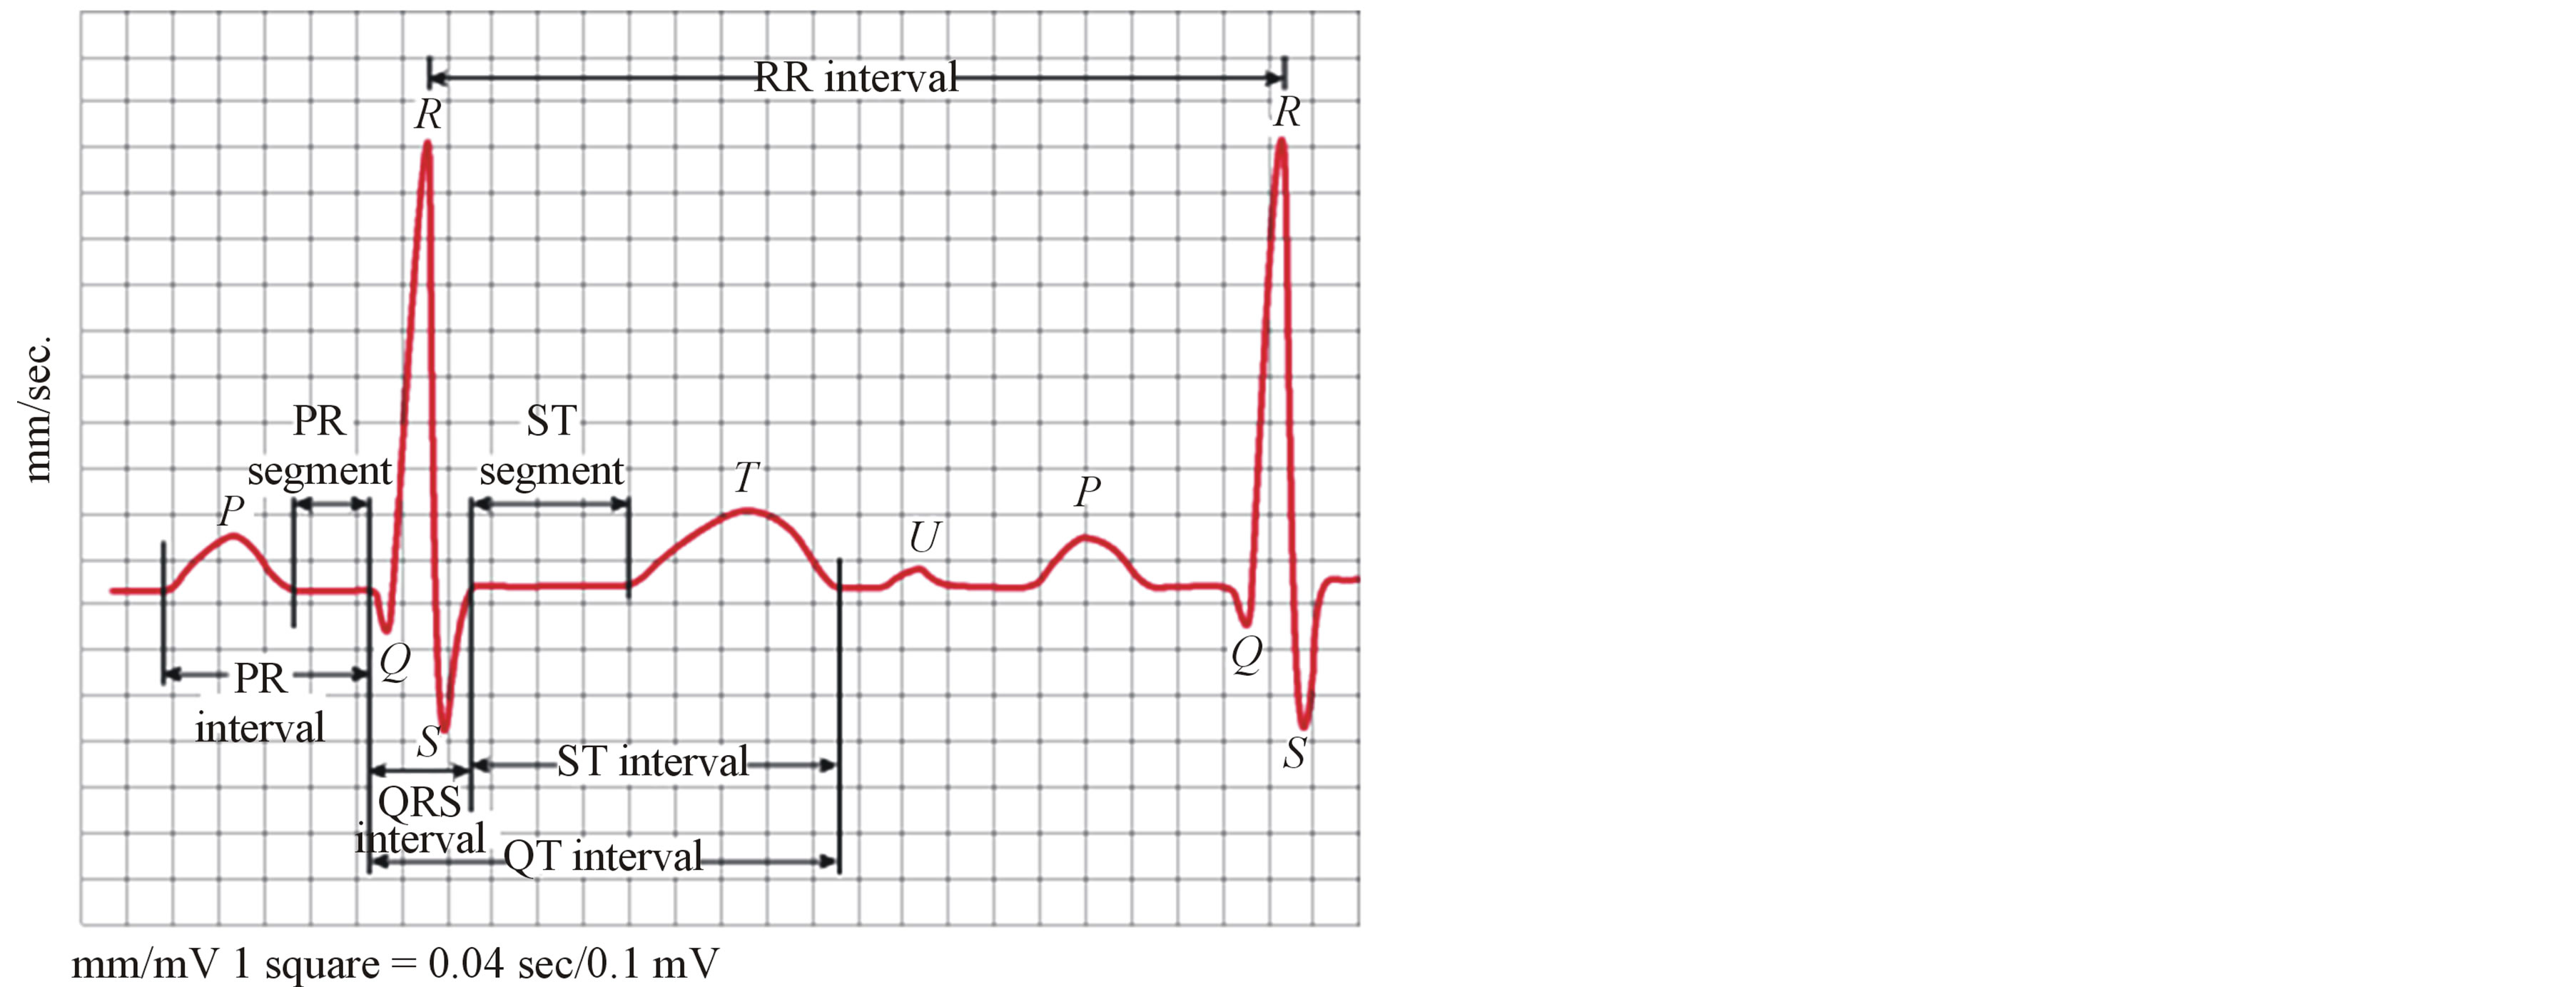 Compression of ECG Signals Based on DWT and Exploiting the